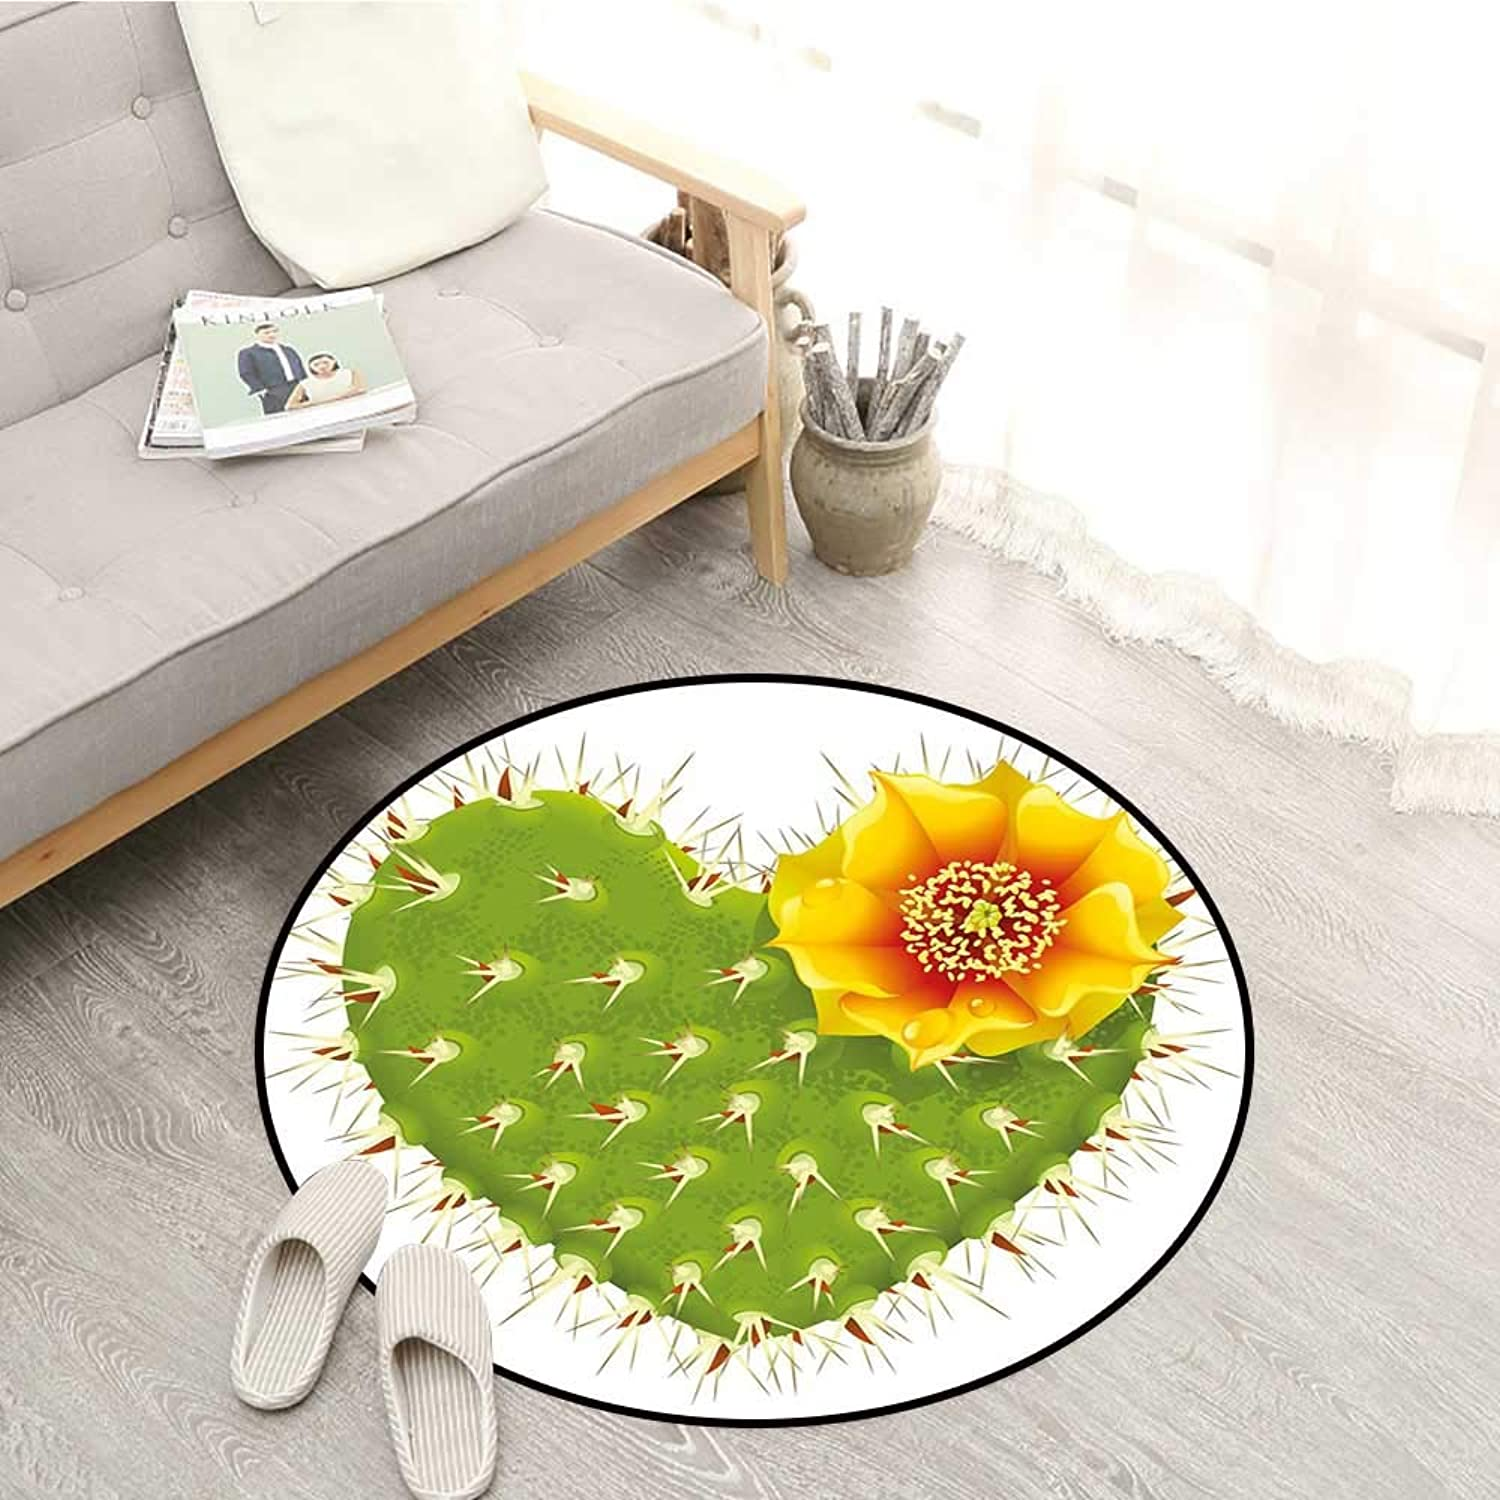 Cactus Decor Kids Rugs Thorny Cactus in The Shape of Heart and Yellow Flower Opuntia Spikes Sofa Coffee Table Mat 3'11  Green Yellow orange